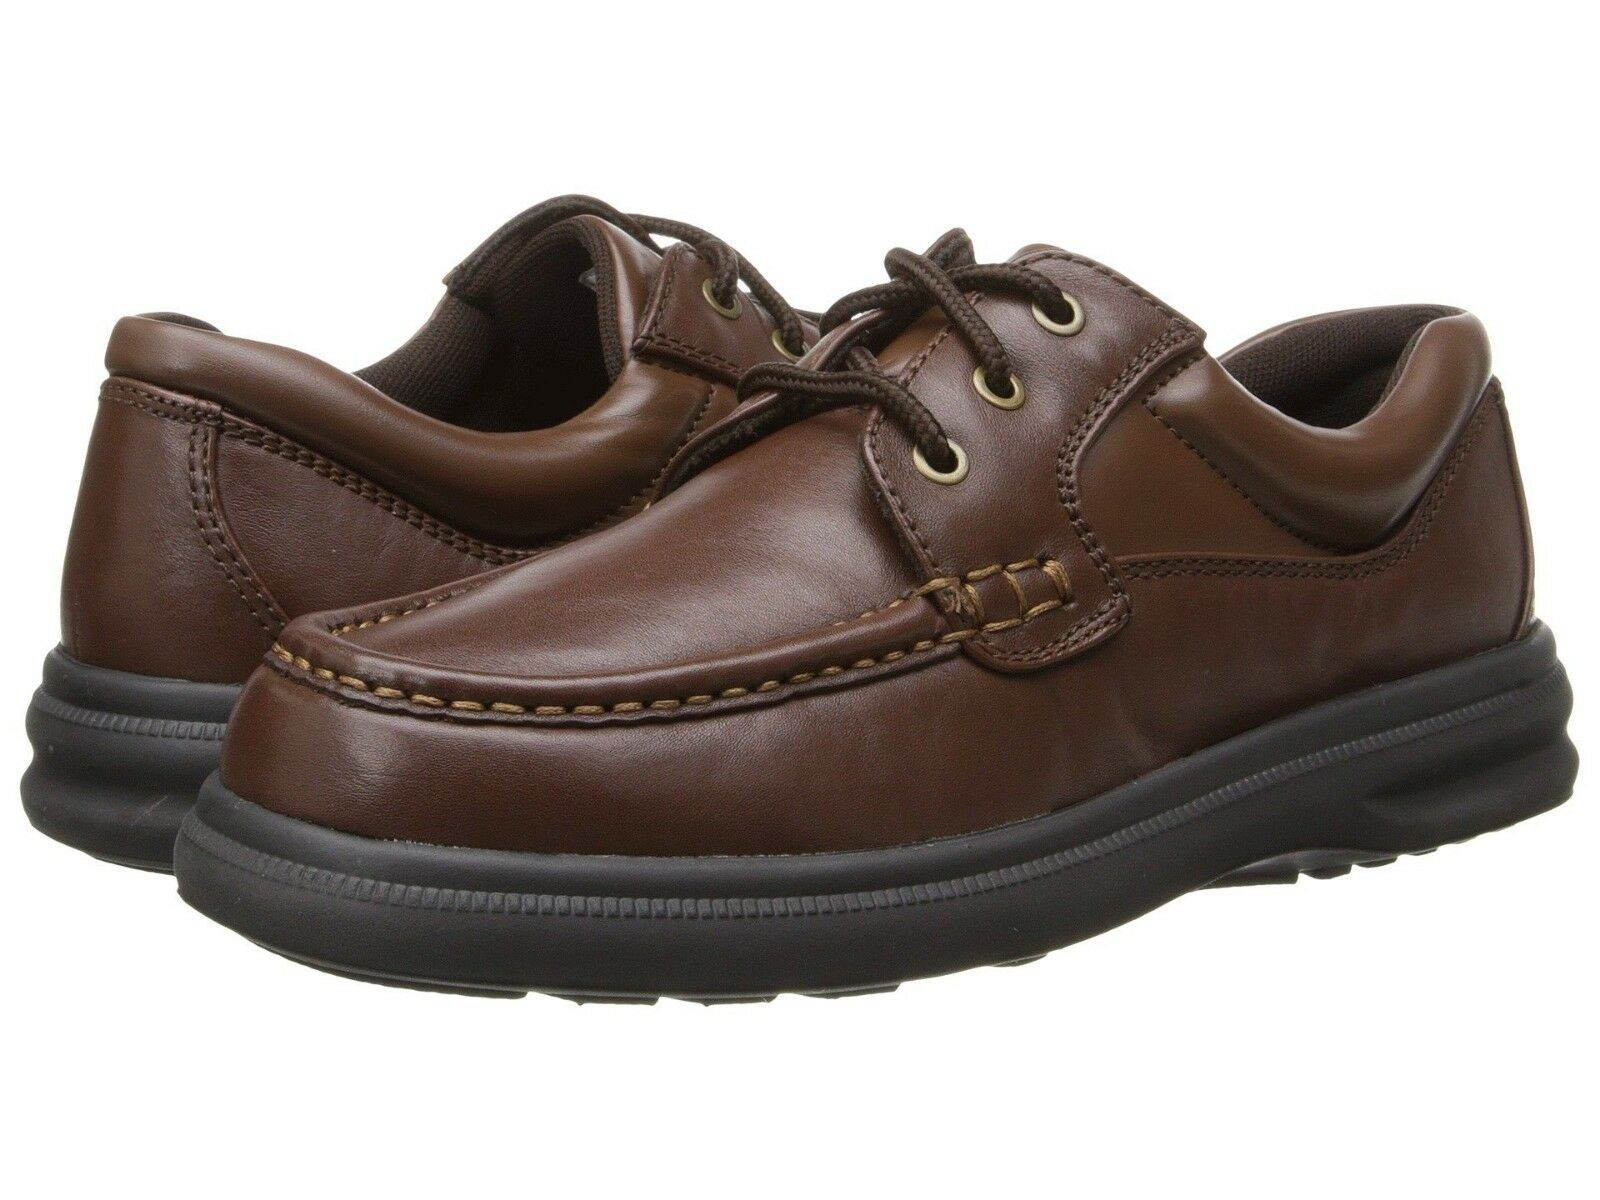 Hush Puppies Gus 18772 Tan Leather Super Comfort Men Shoes - WIDE Width